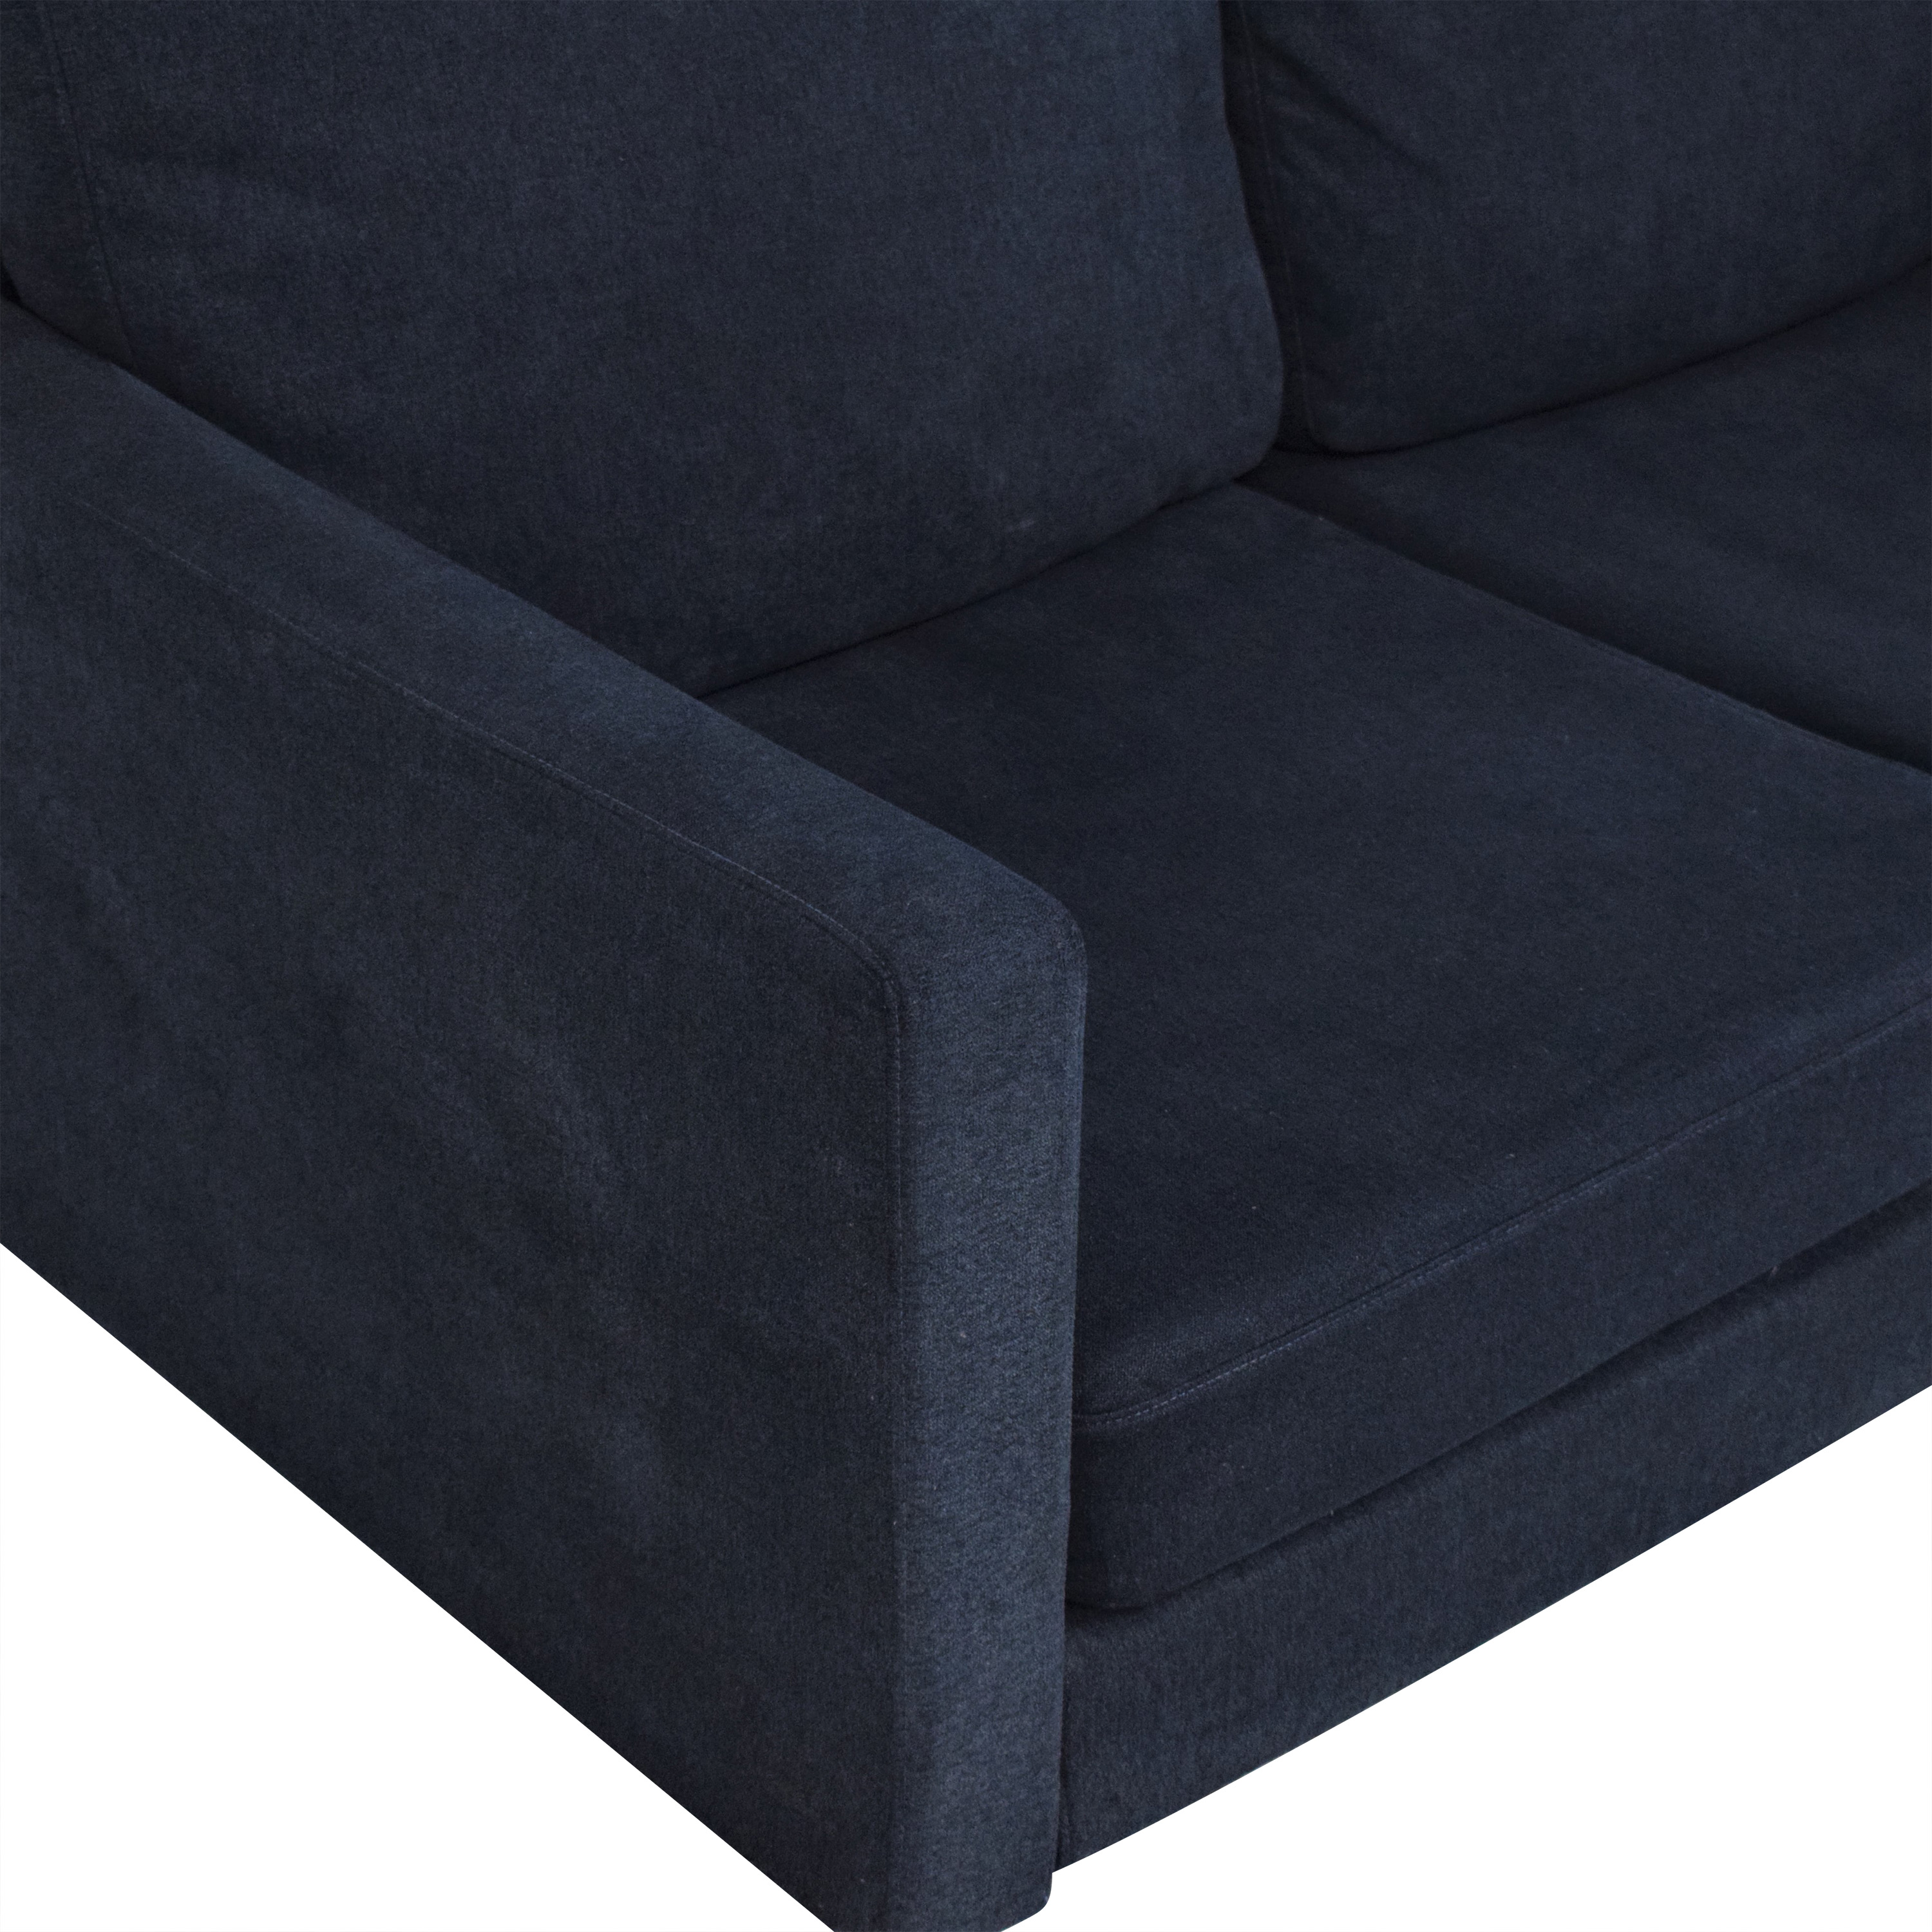 shop Campaign Modern Loveseat in Brushed Weave Midnight Navy Campaign